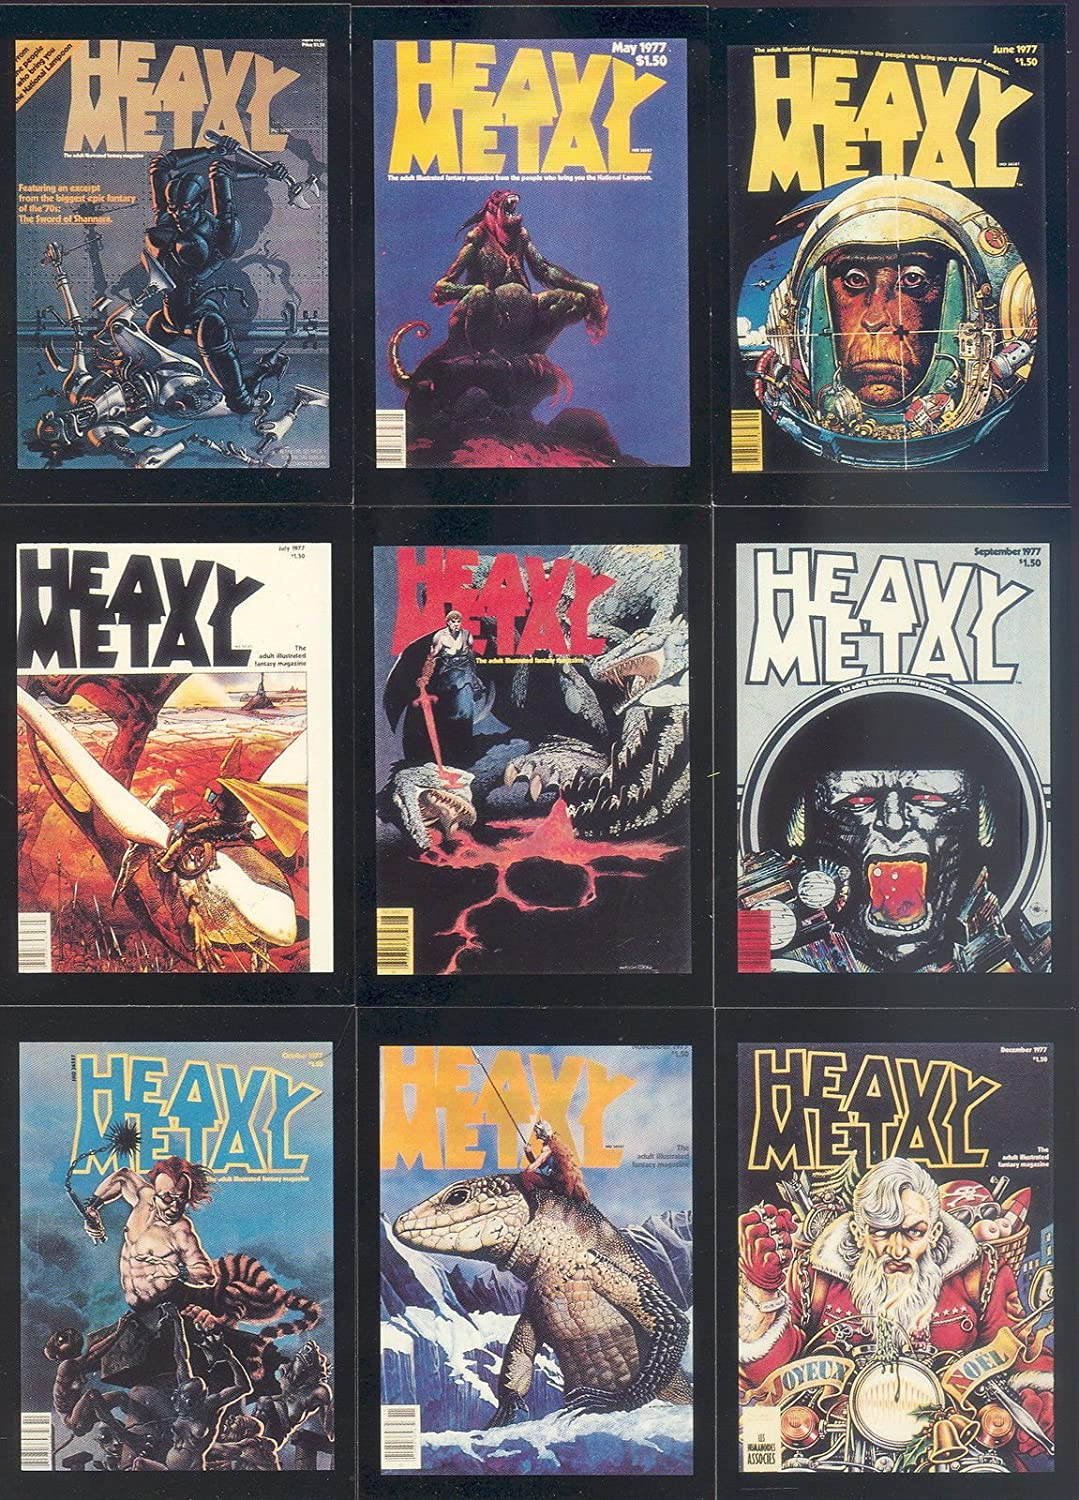 HEAVY METAL COVERS SERIES 1 1991 COMIC IMAGES COMPLETE BASE CARD SET OF 90 FA